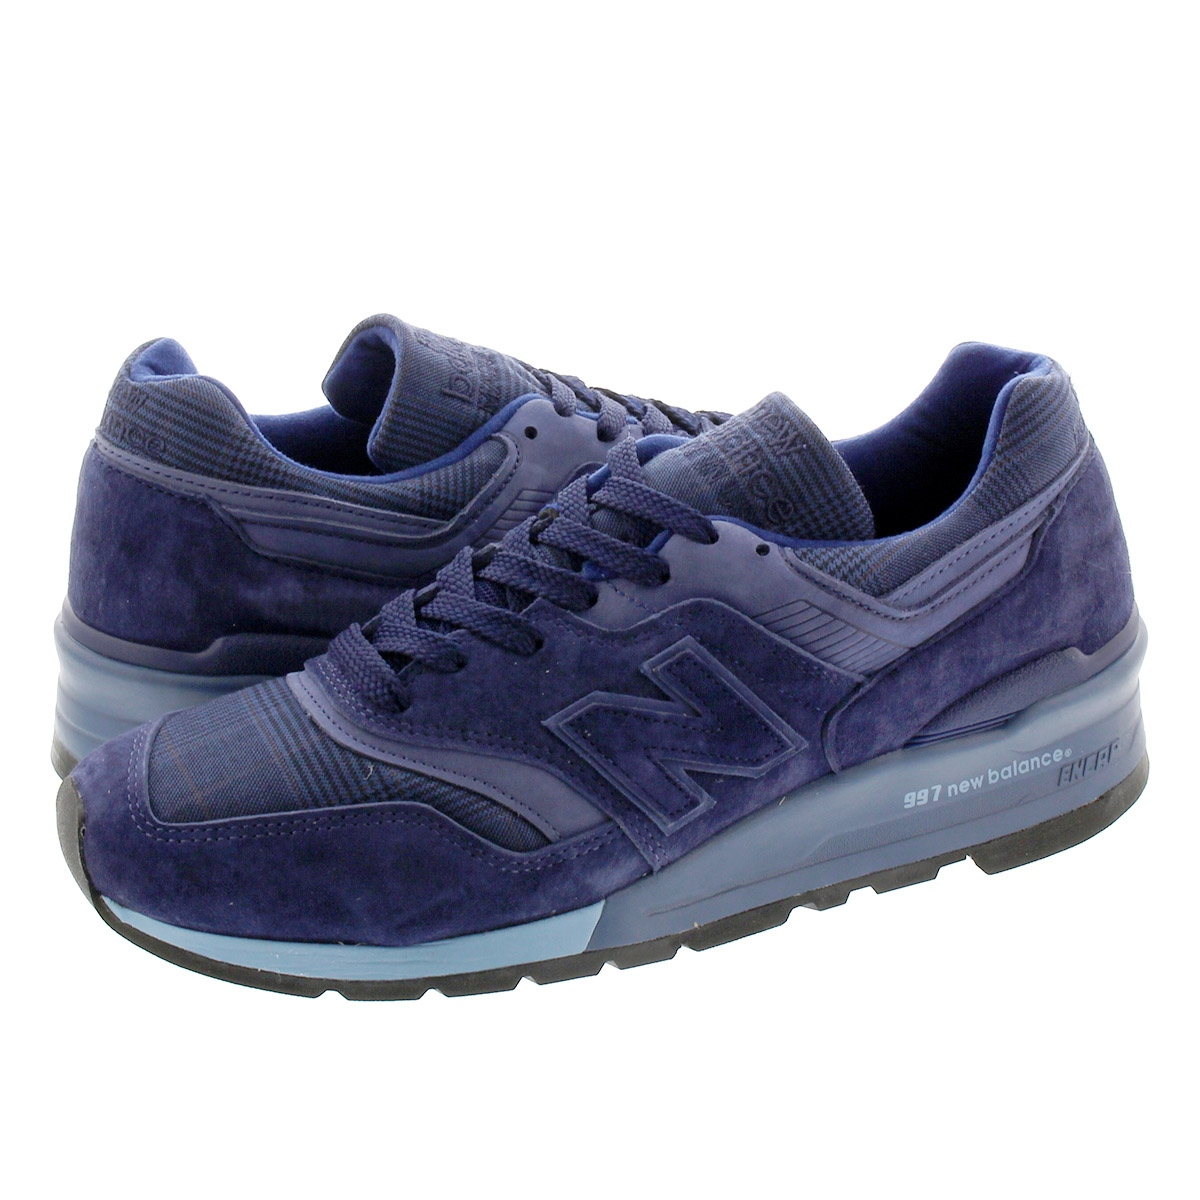 NEW BALANCE M997PAM 【MADE IN U.S.A.】 ニューバランス M997 PAM BLUE